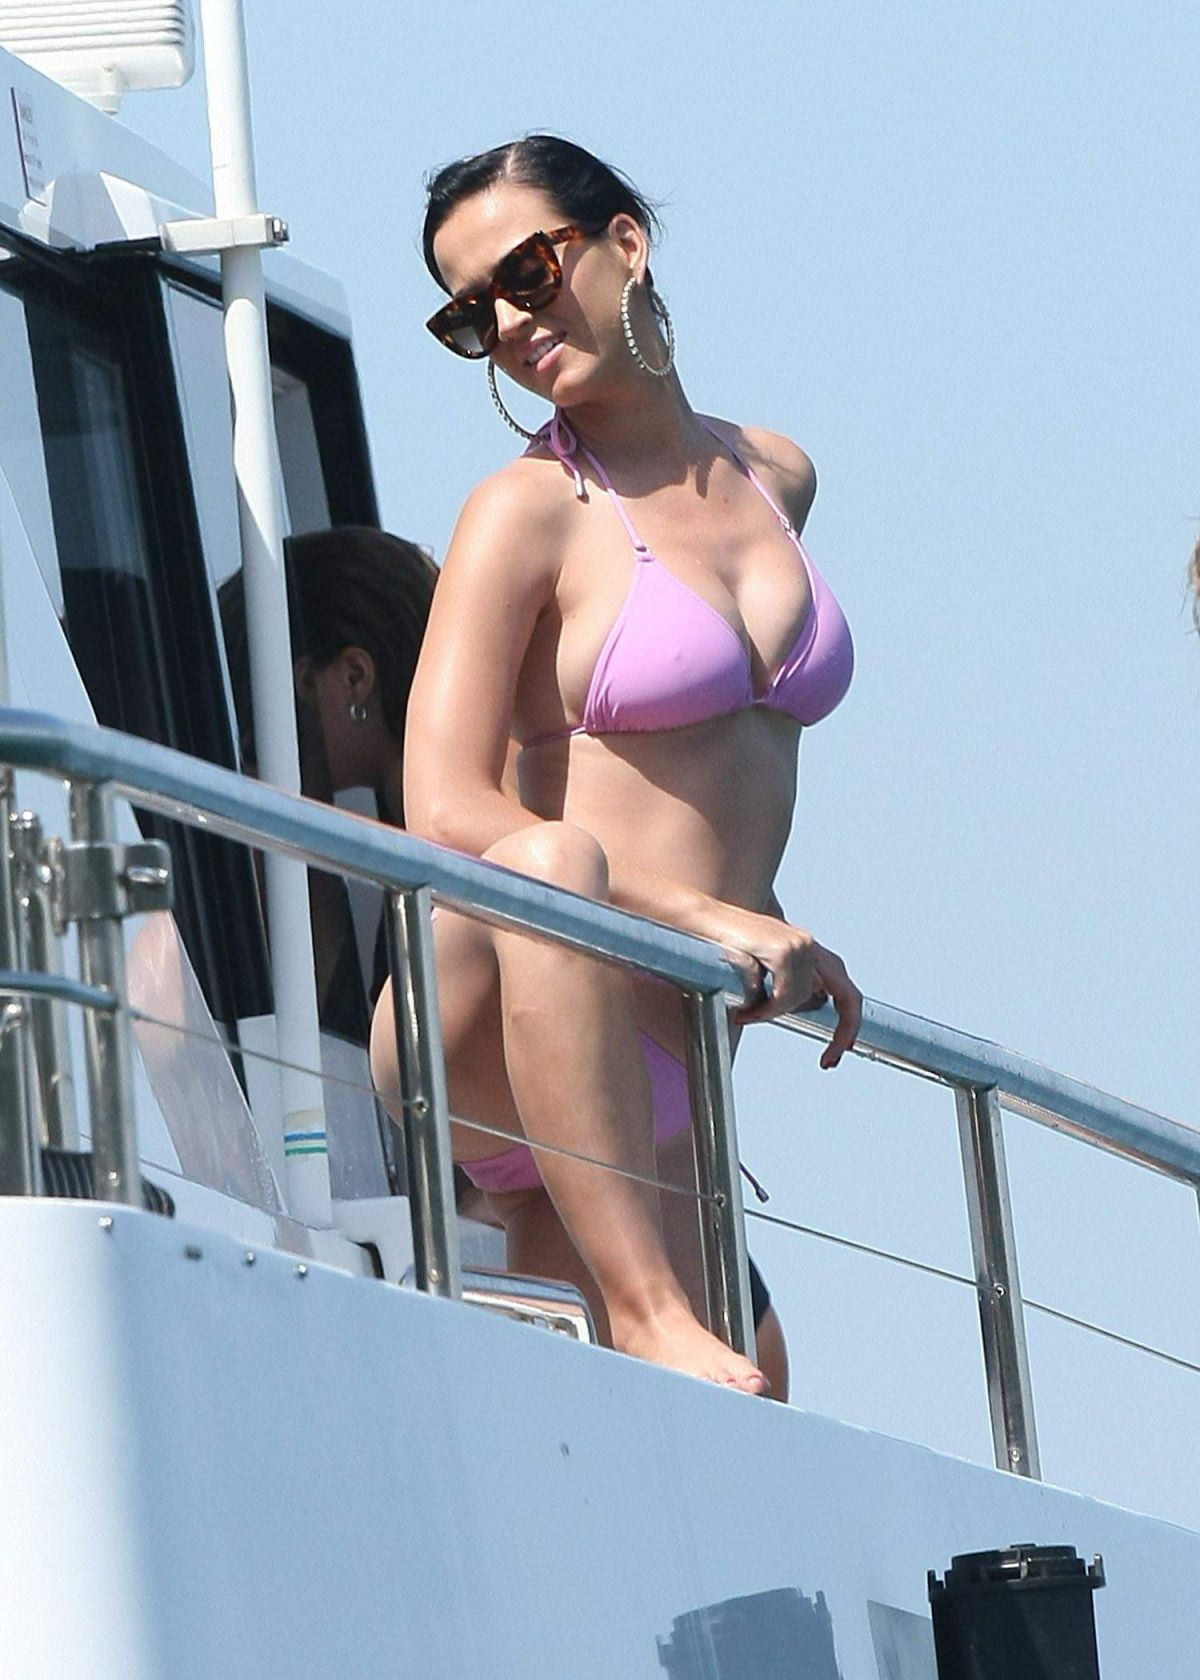 katy-perry-hot-pictures-